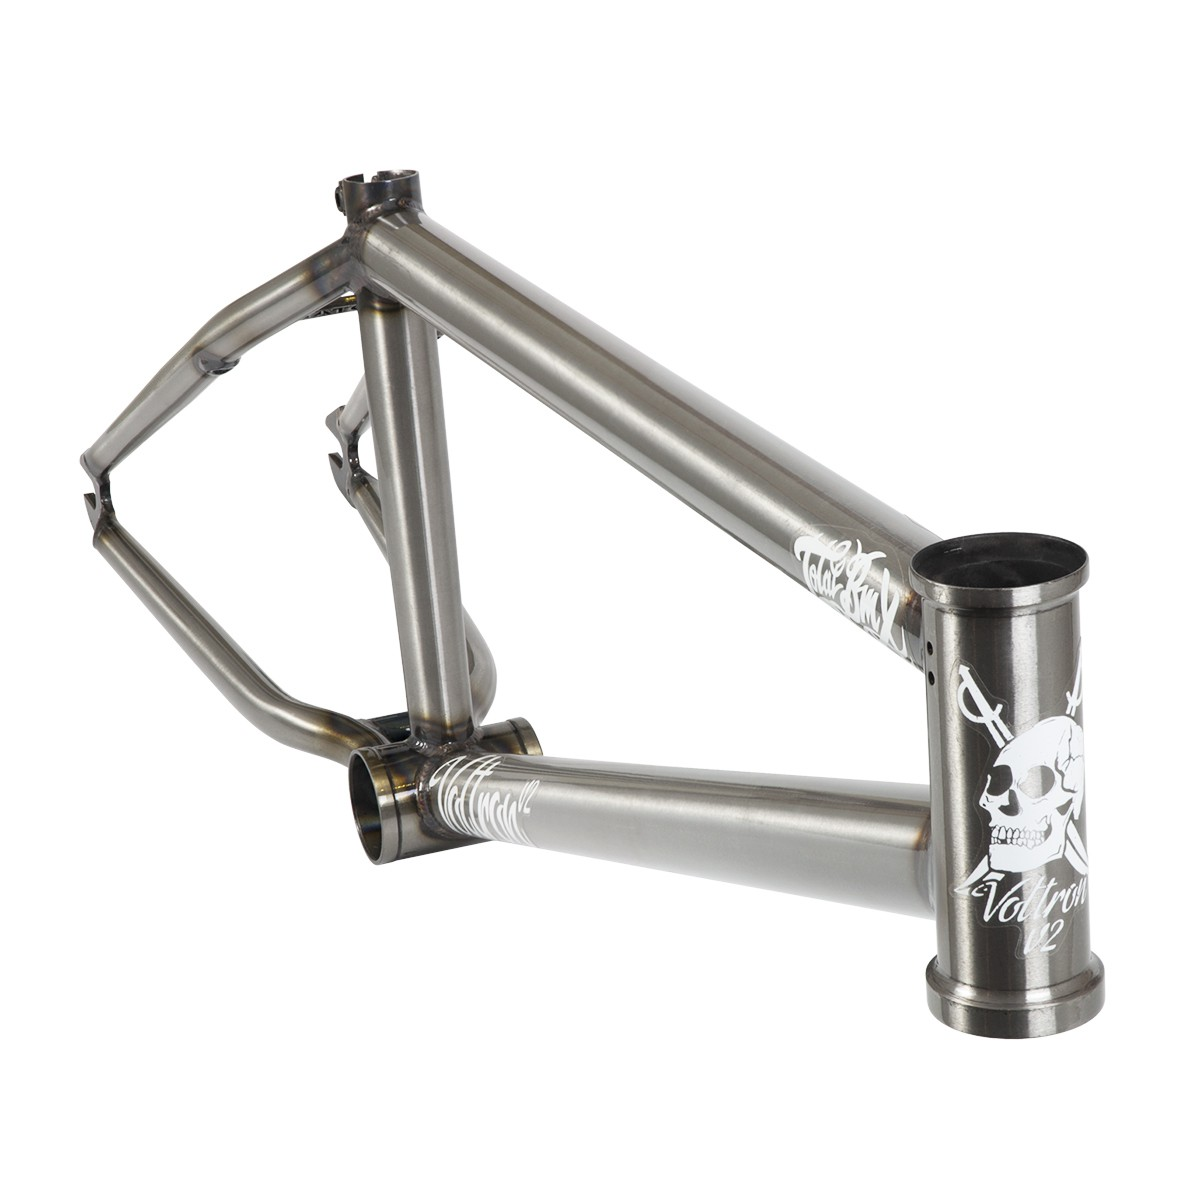 TOTAL BMX VOLTRON V2 21 RAW CLEAR COAT FRAME